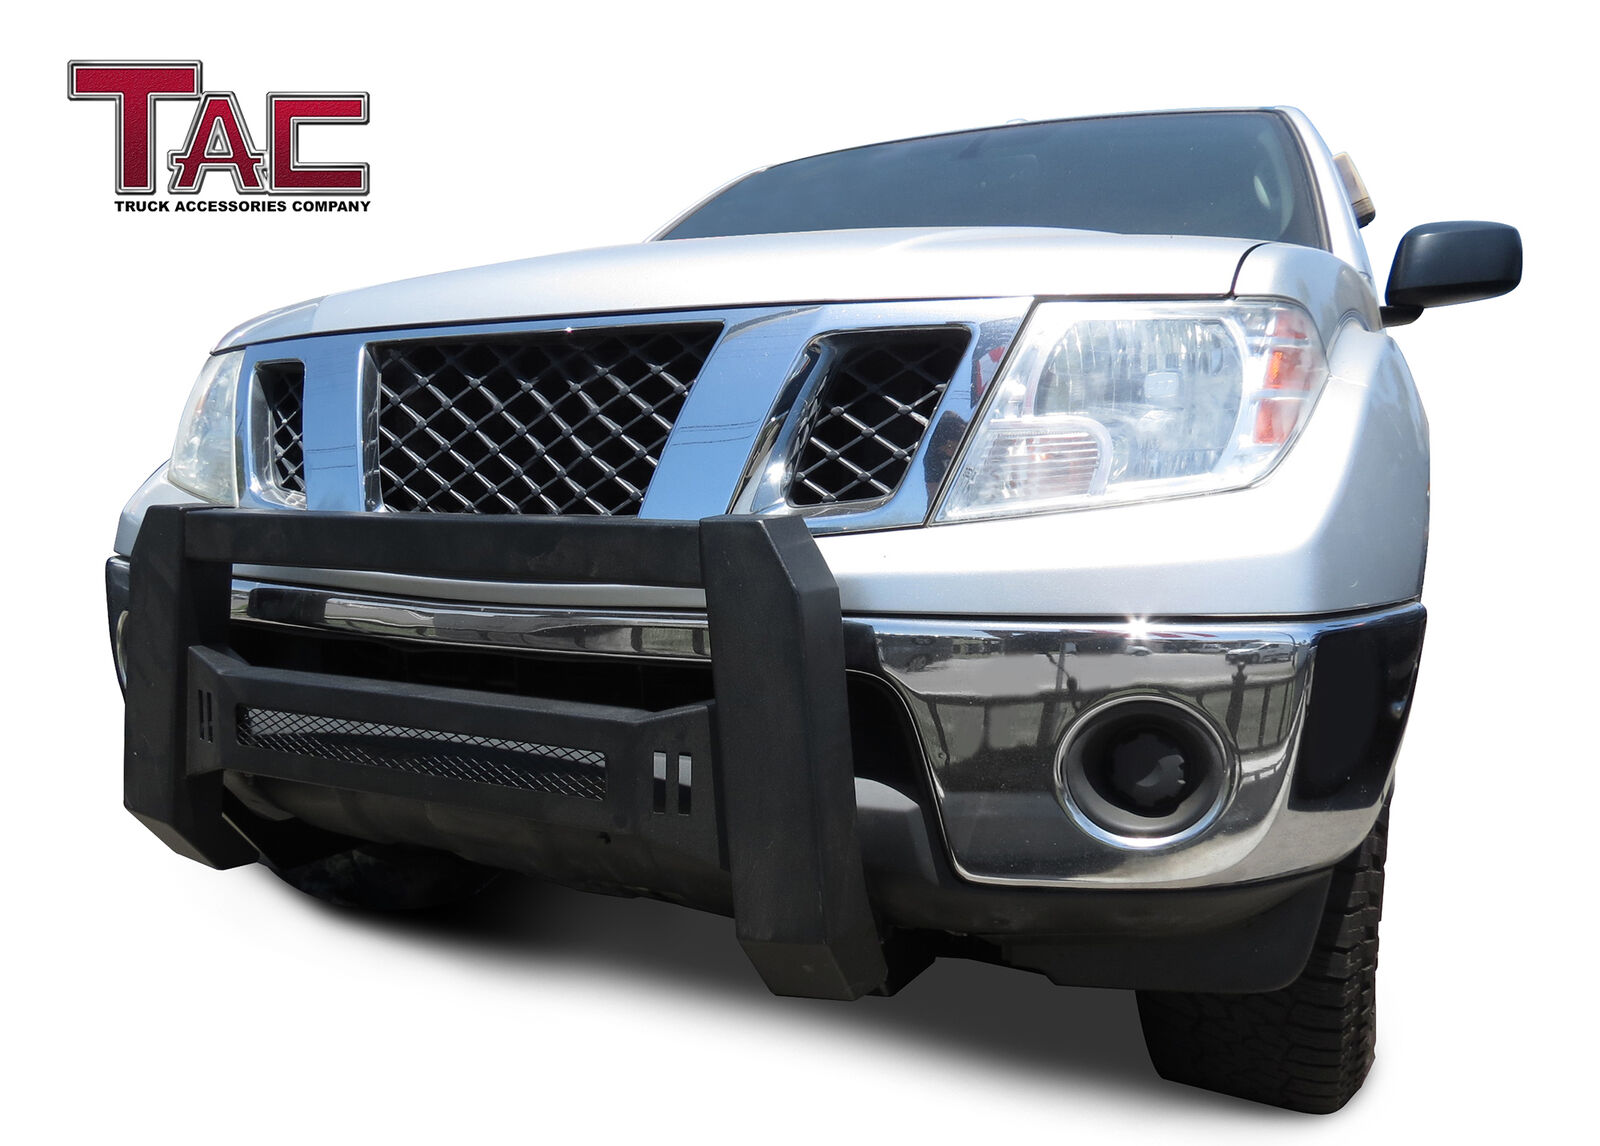 Details About Mesh Modular Bull Bar For 2005 2020 Nissan Frontier Grille Guard Front Bumper